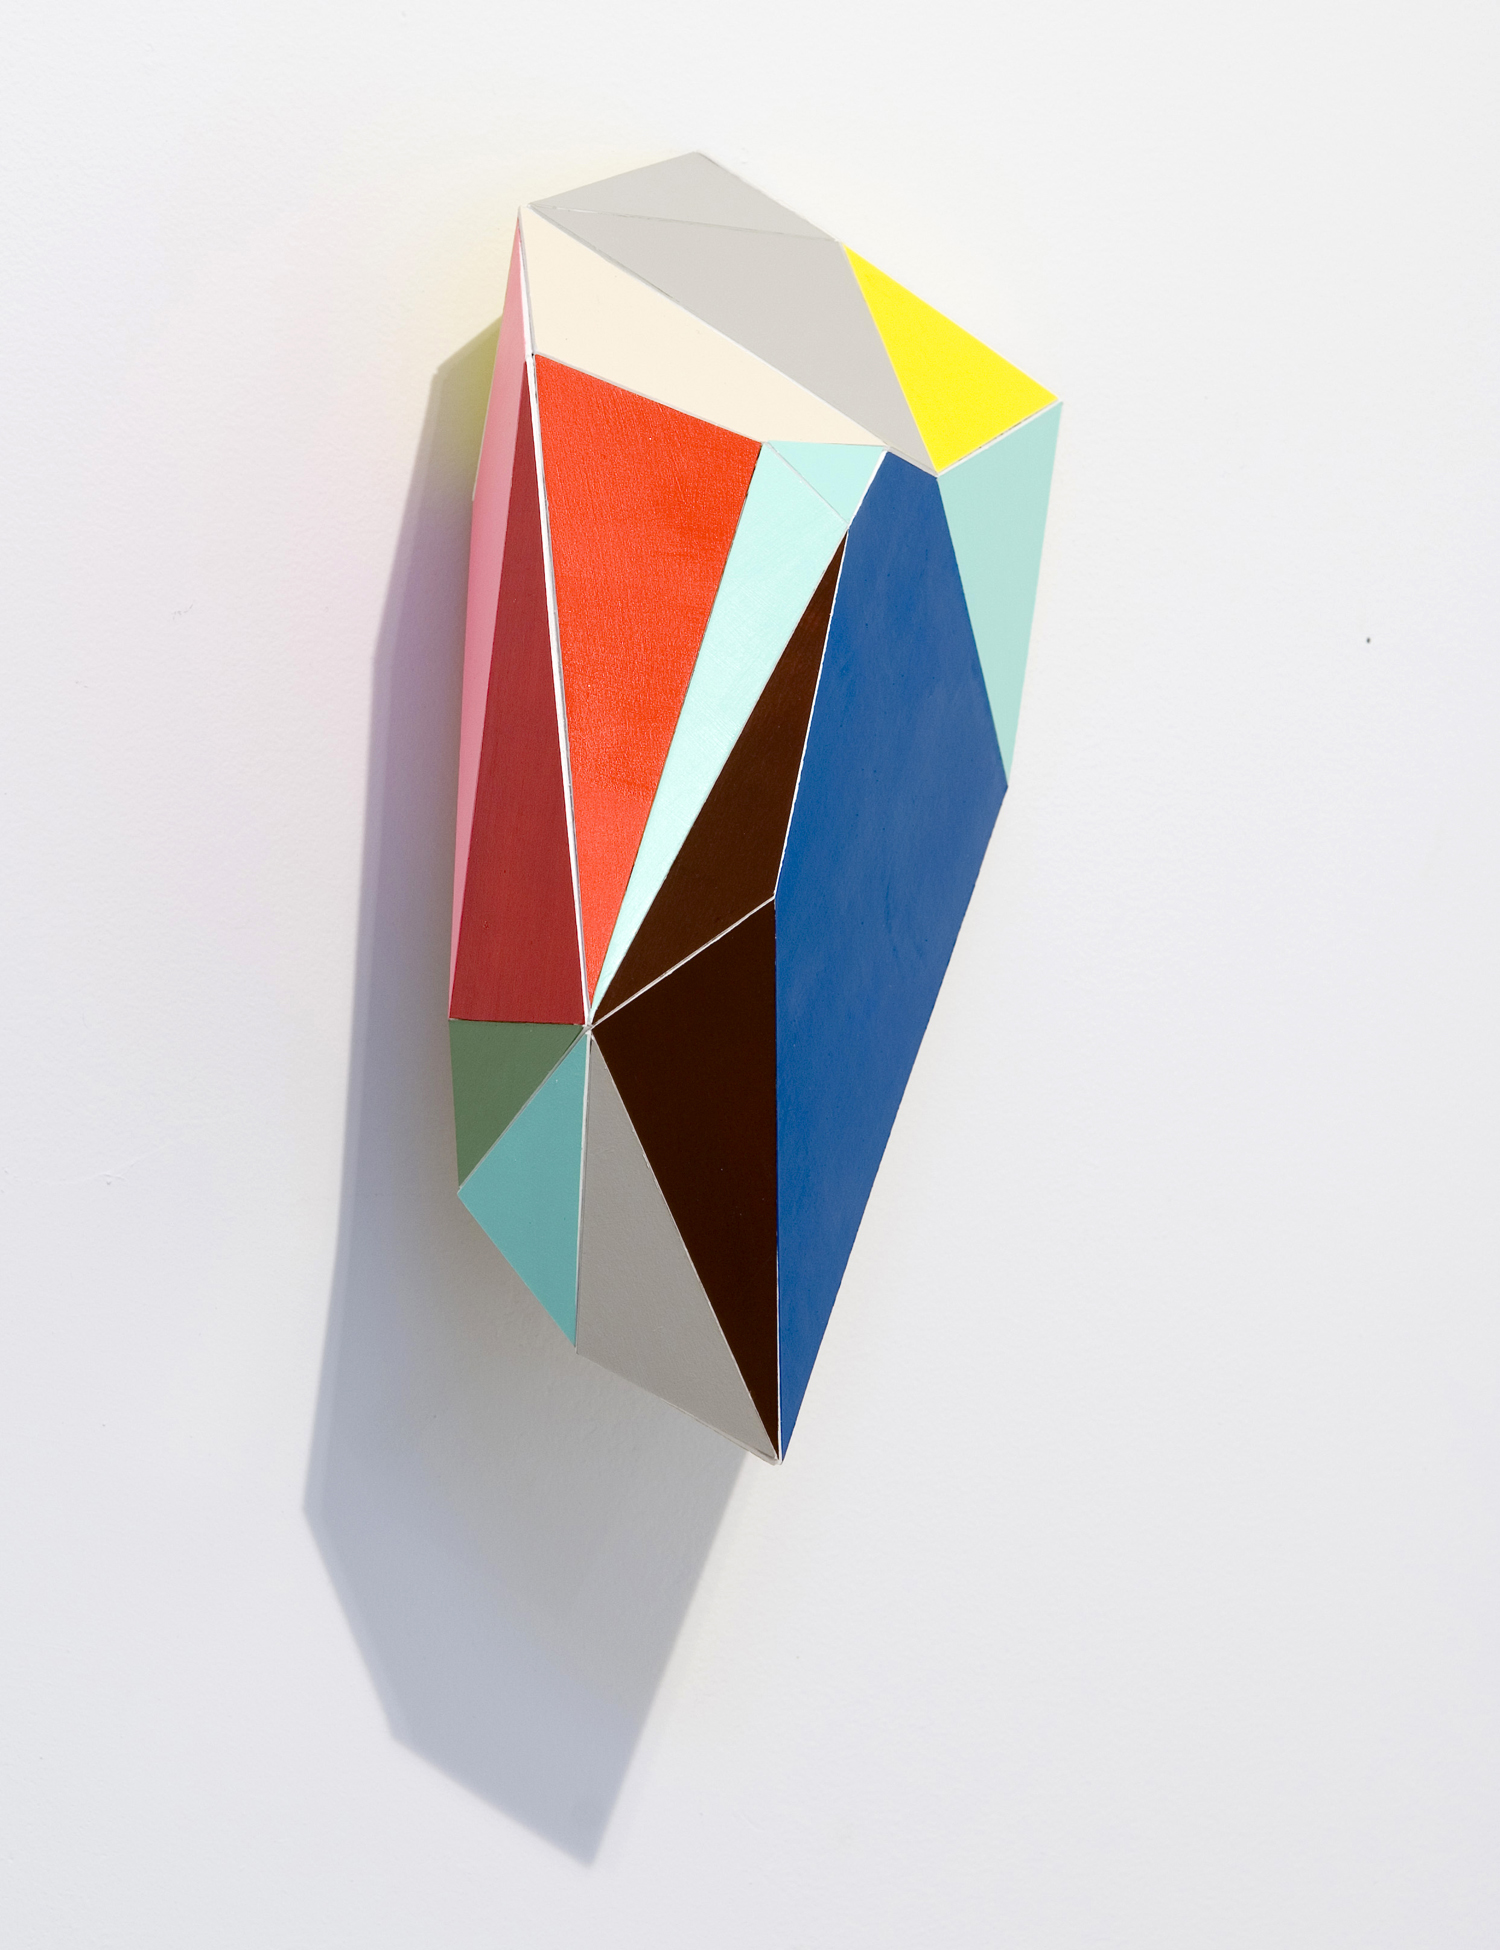 Magnetic Adaptable #5 2007  Acrylic on board, magnets dimensions variable